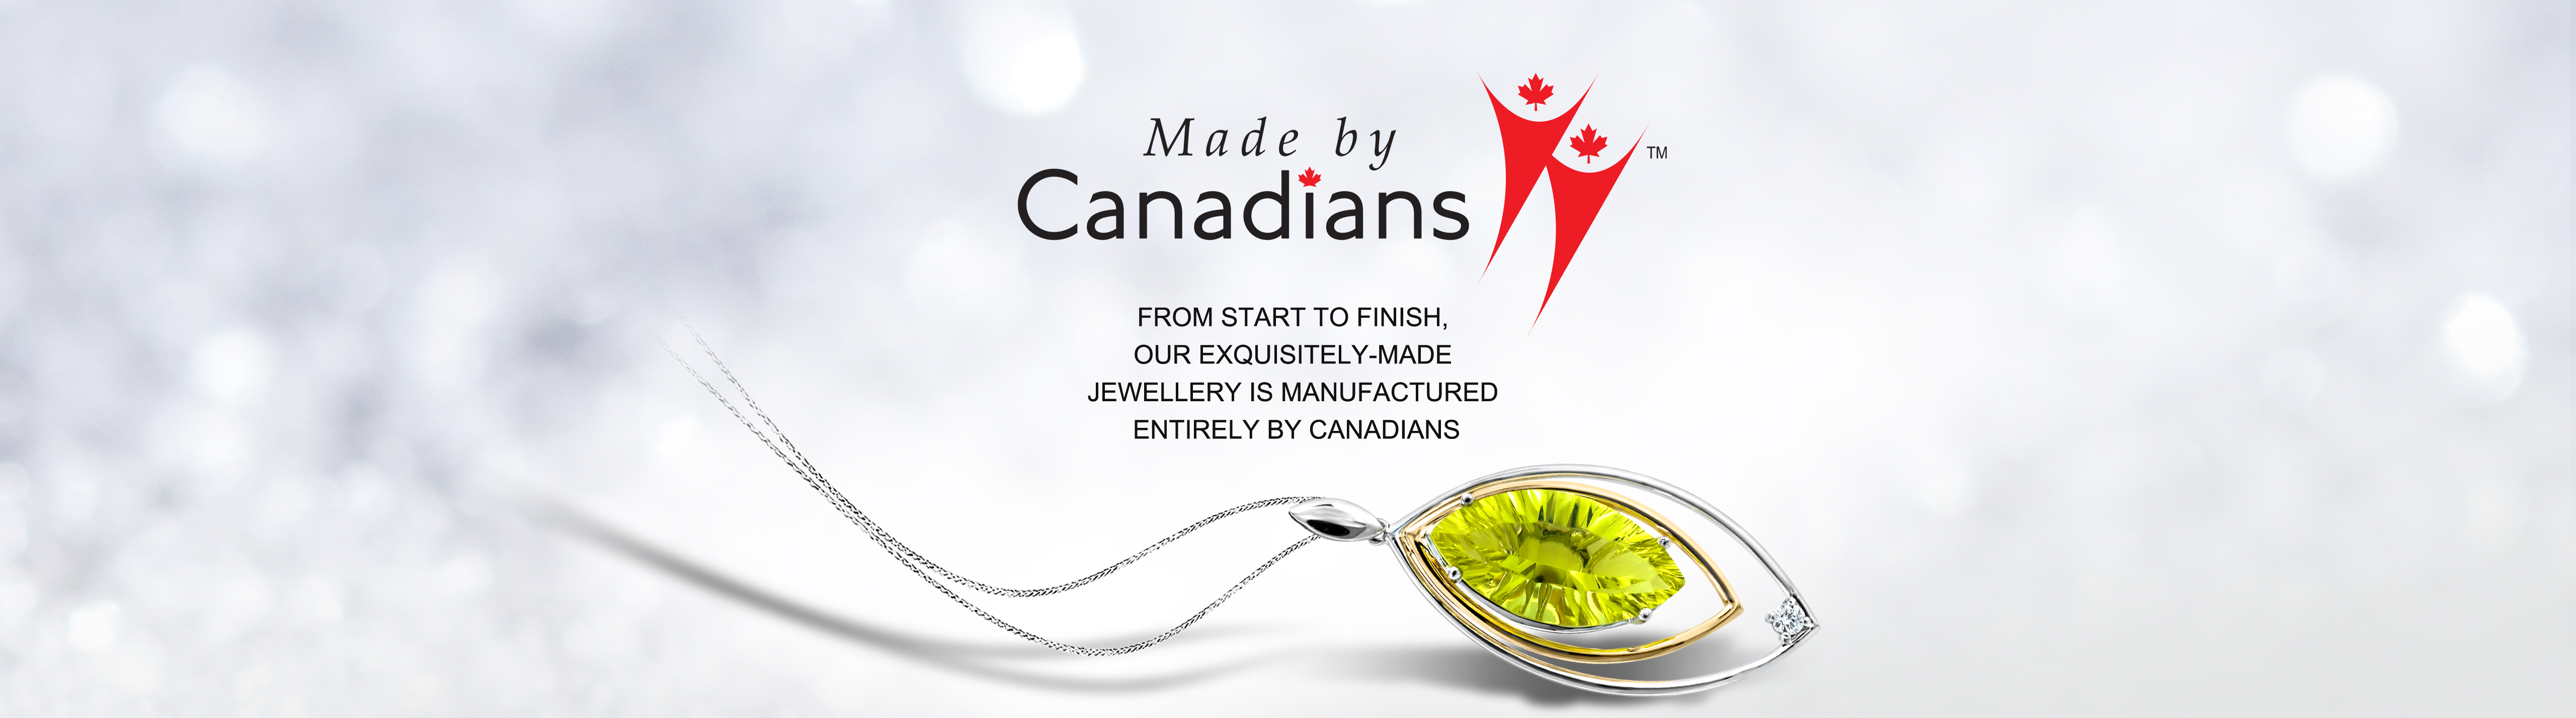 made by canadians 2019